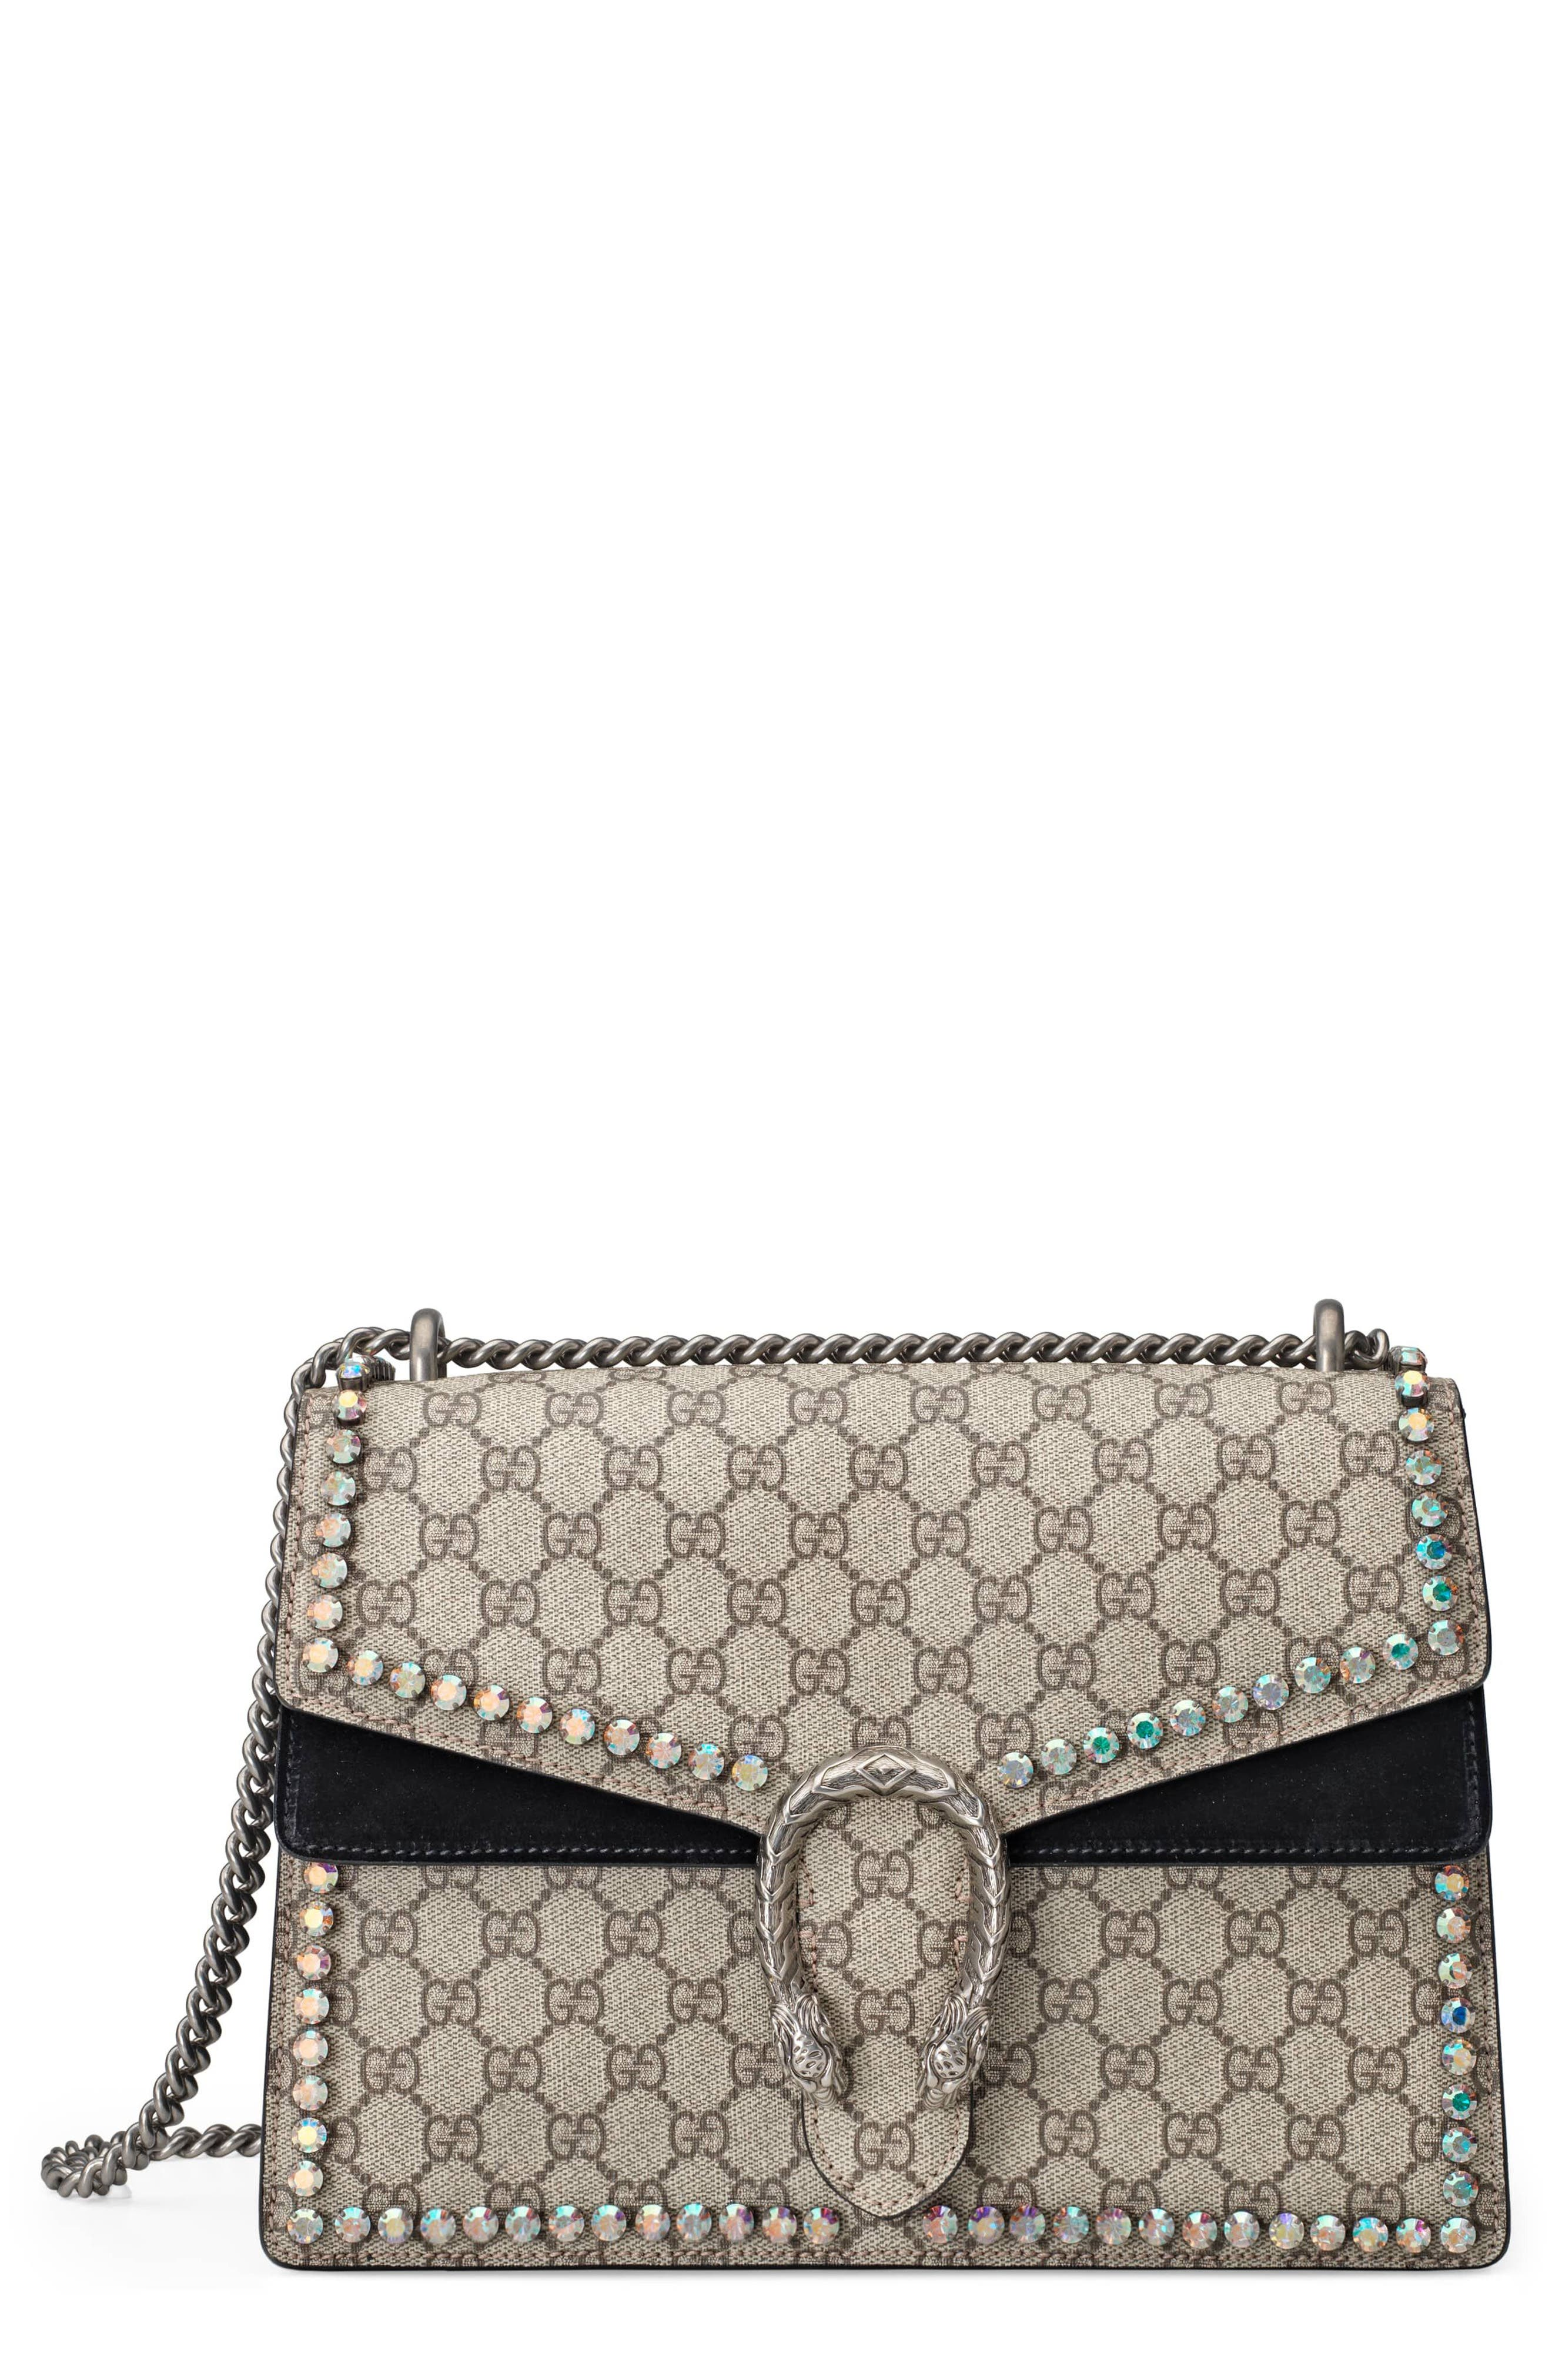 Gucci Medium Dionysus Crystal Embellished GG Supreme Canvas